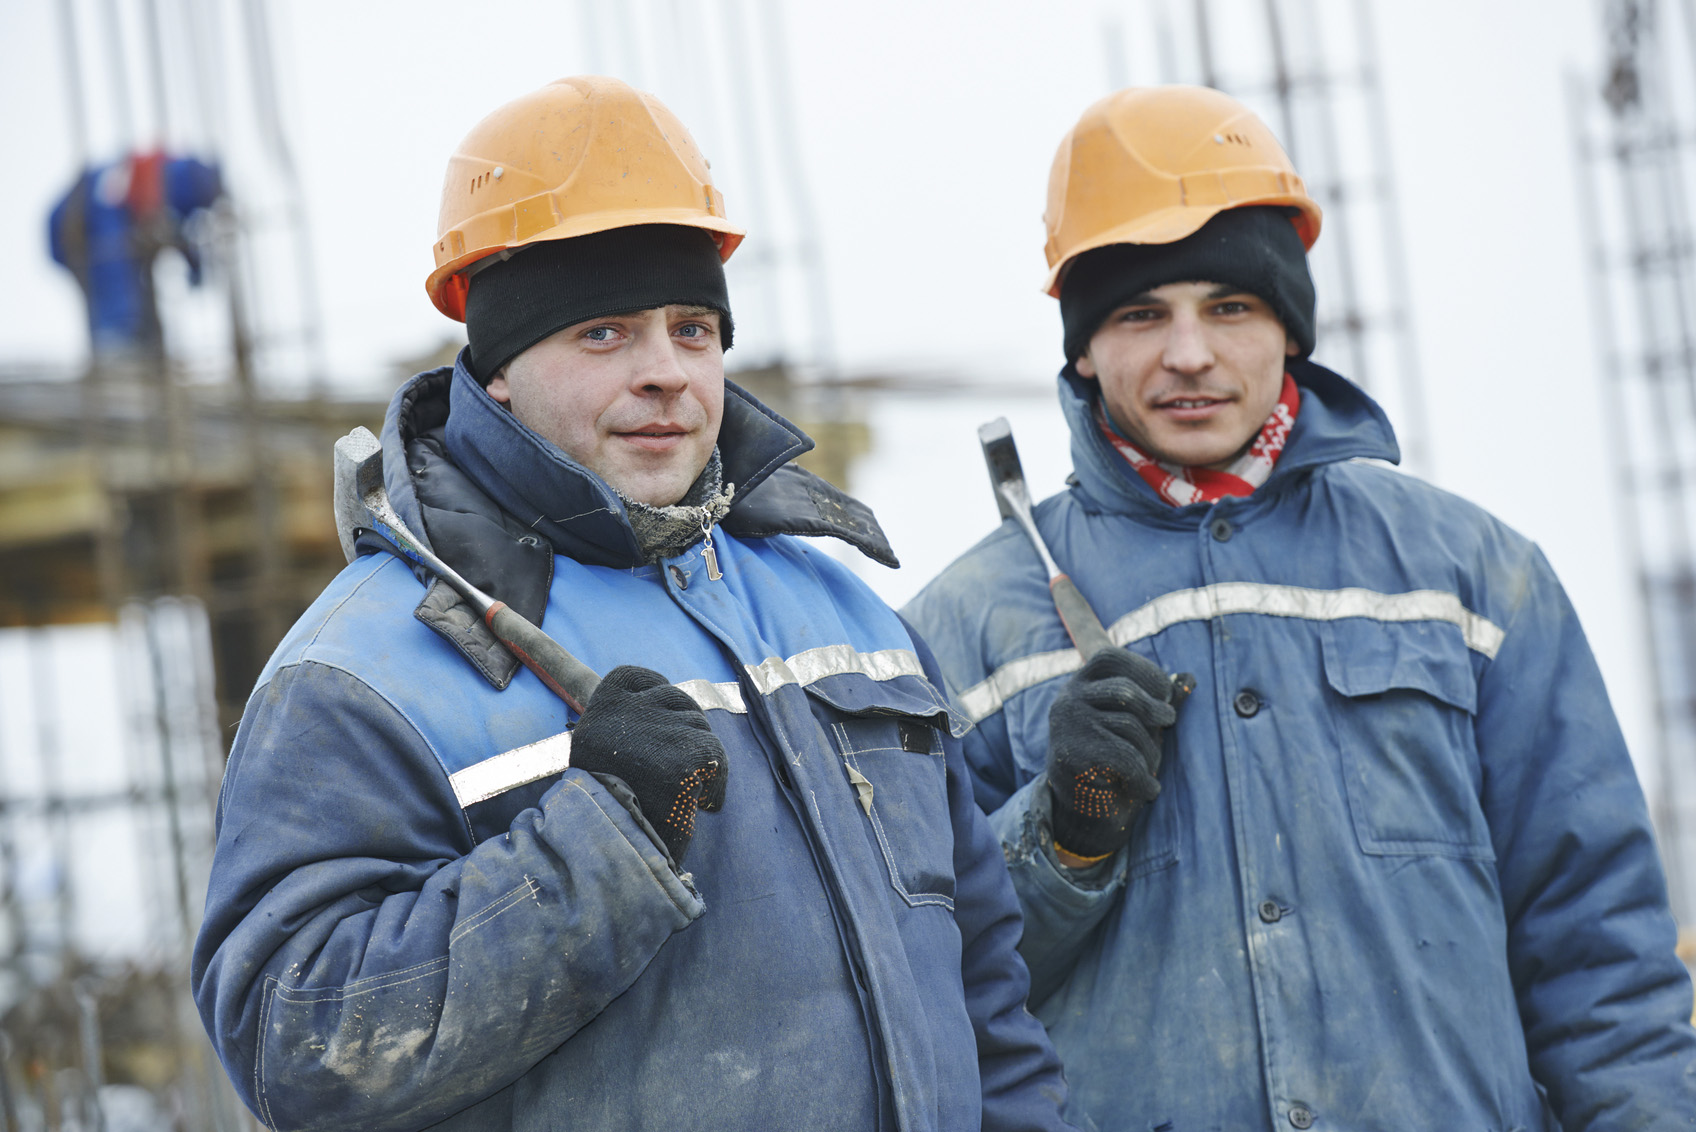 How to Avoid Cold Stress on the Jobsite